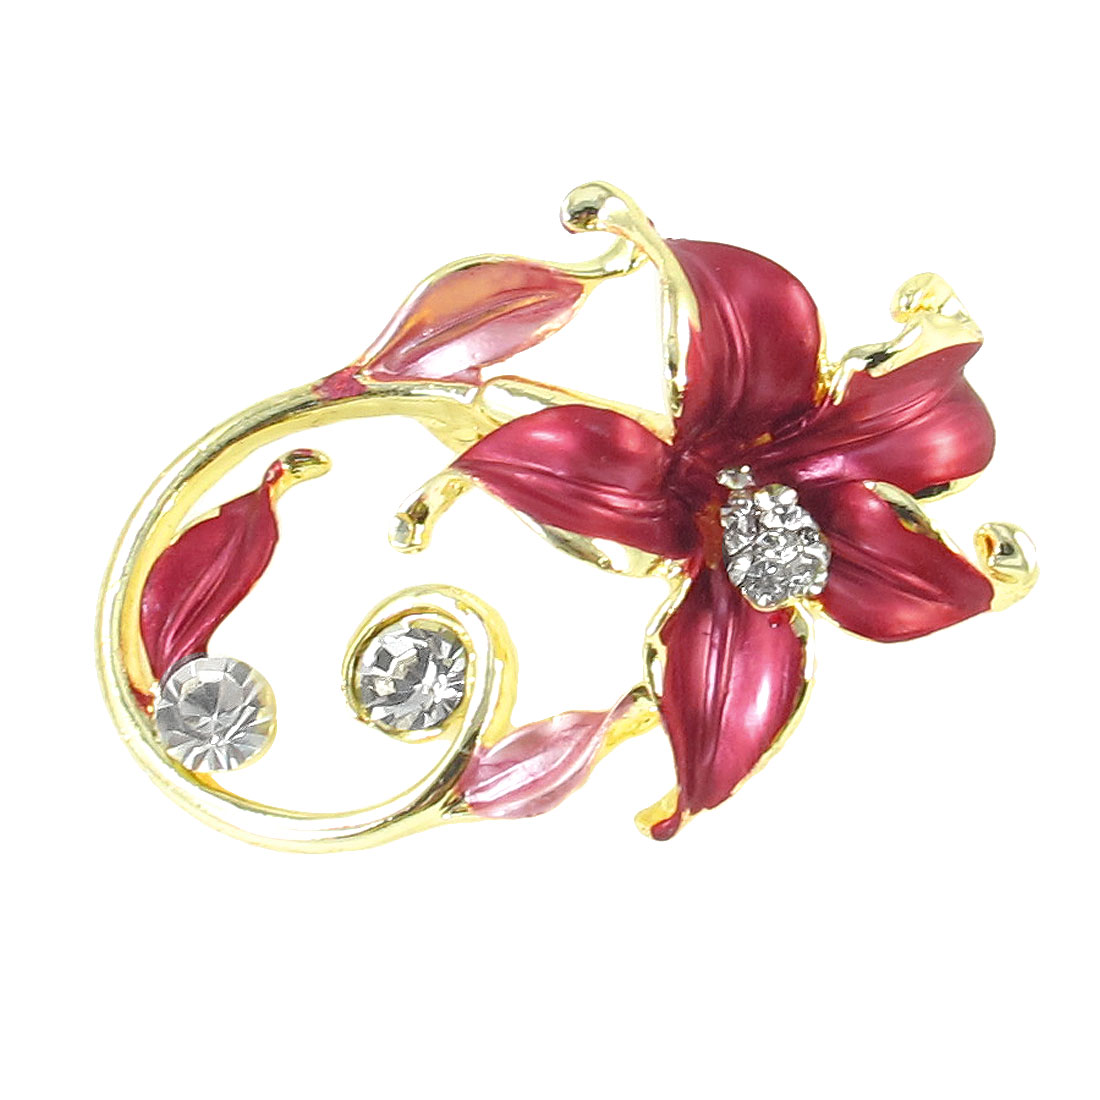 Lady Glitter Rhinestones Detail Burgundy Flower Type Metal Pin Clip Brooch